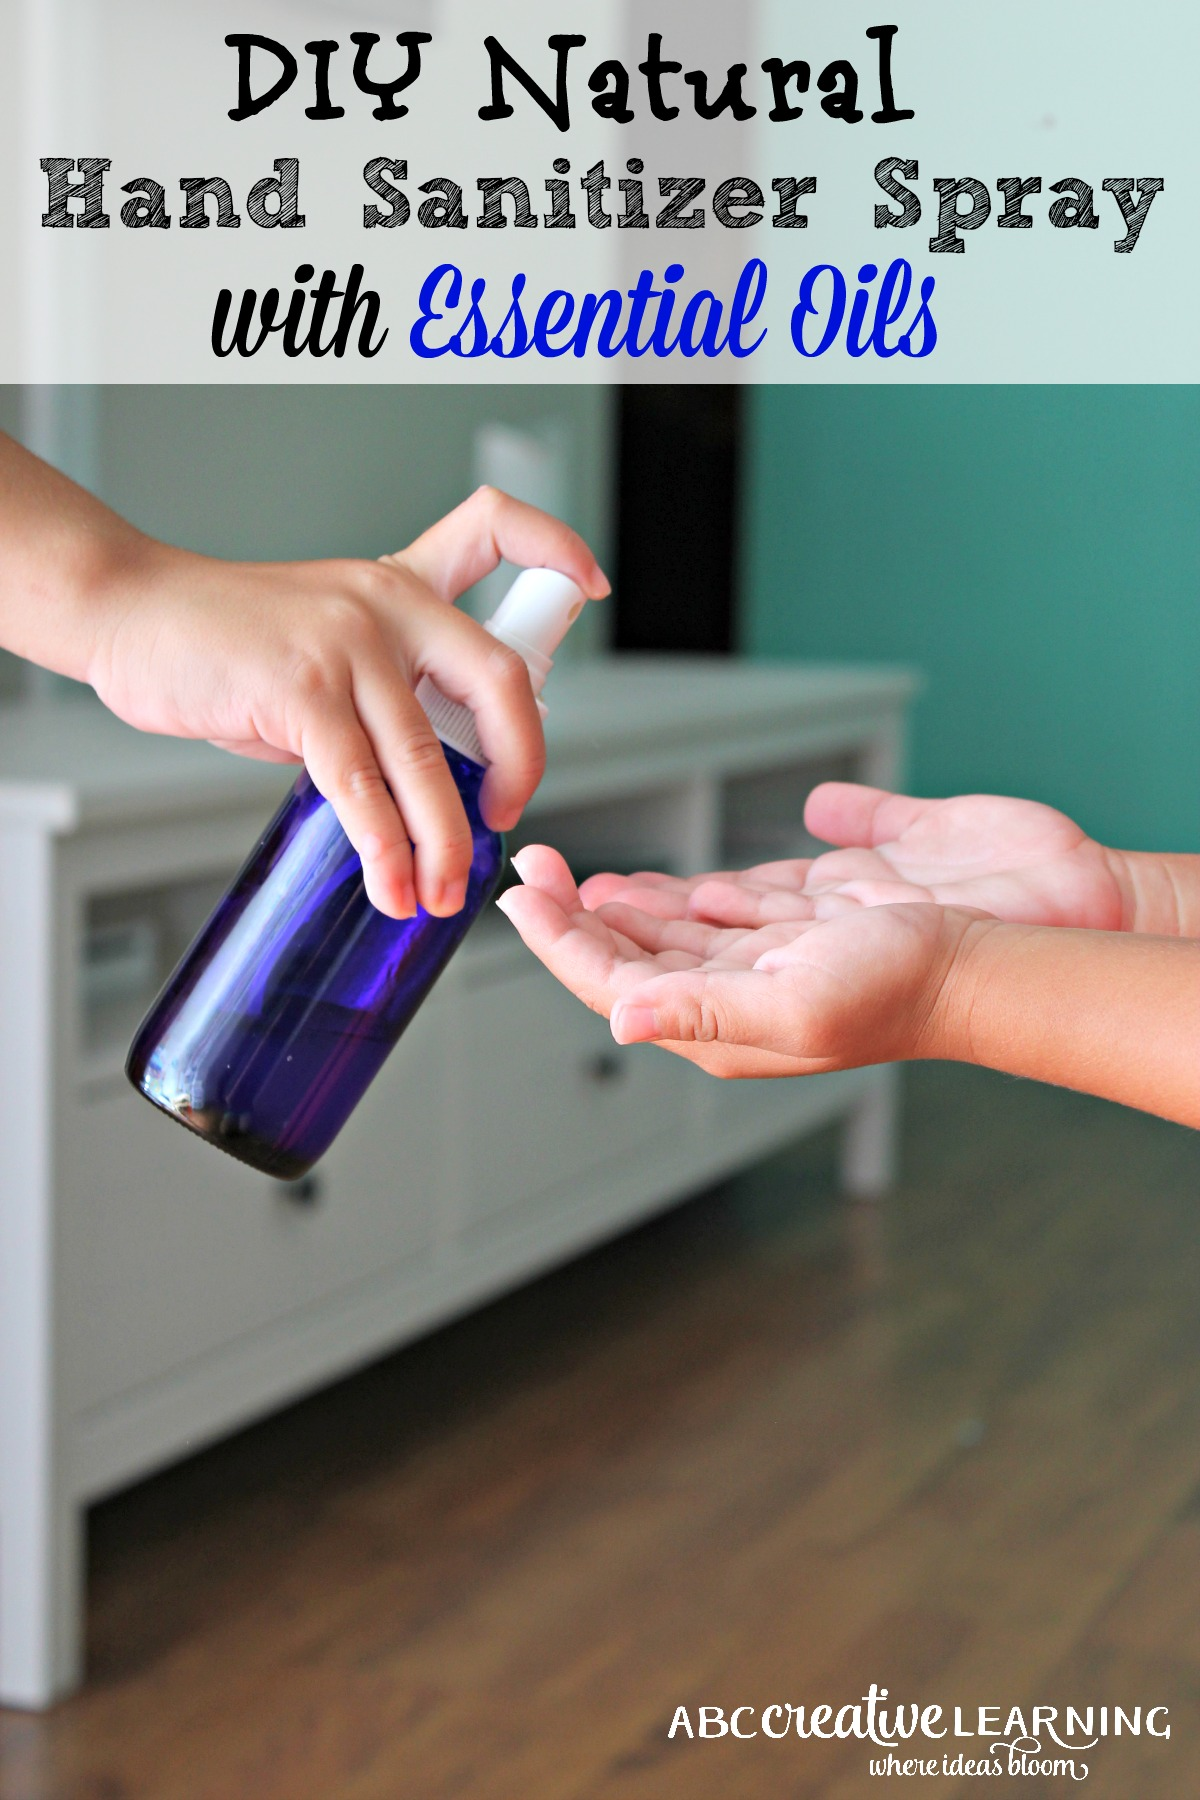 This is my favorite Natural Hand Sanitizer Spray that is created with essential oils! It smells delicious and kills germs! - simplytodaylifecom